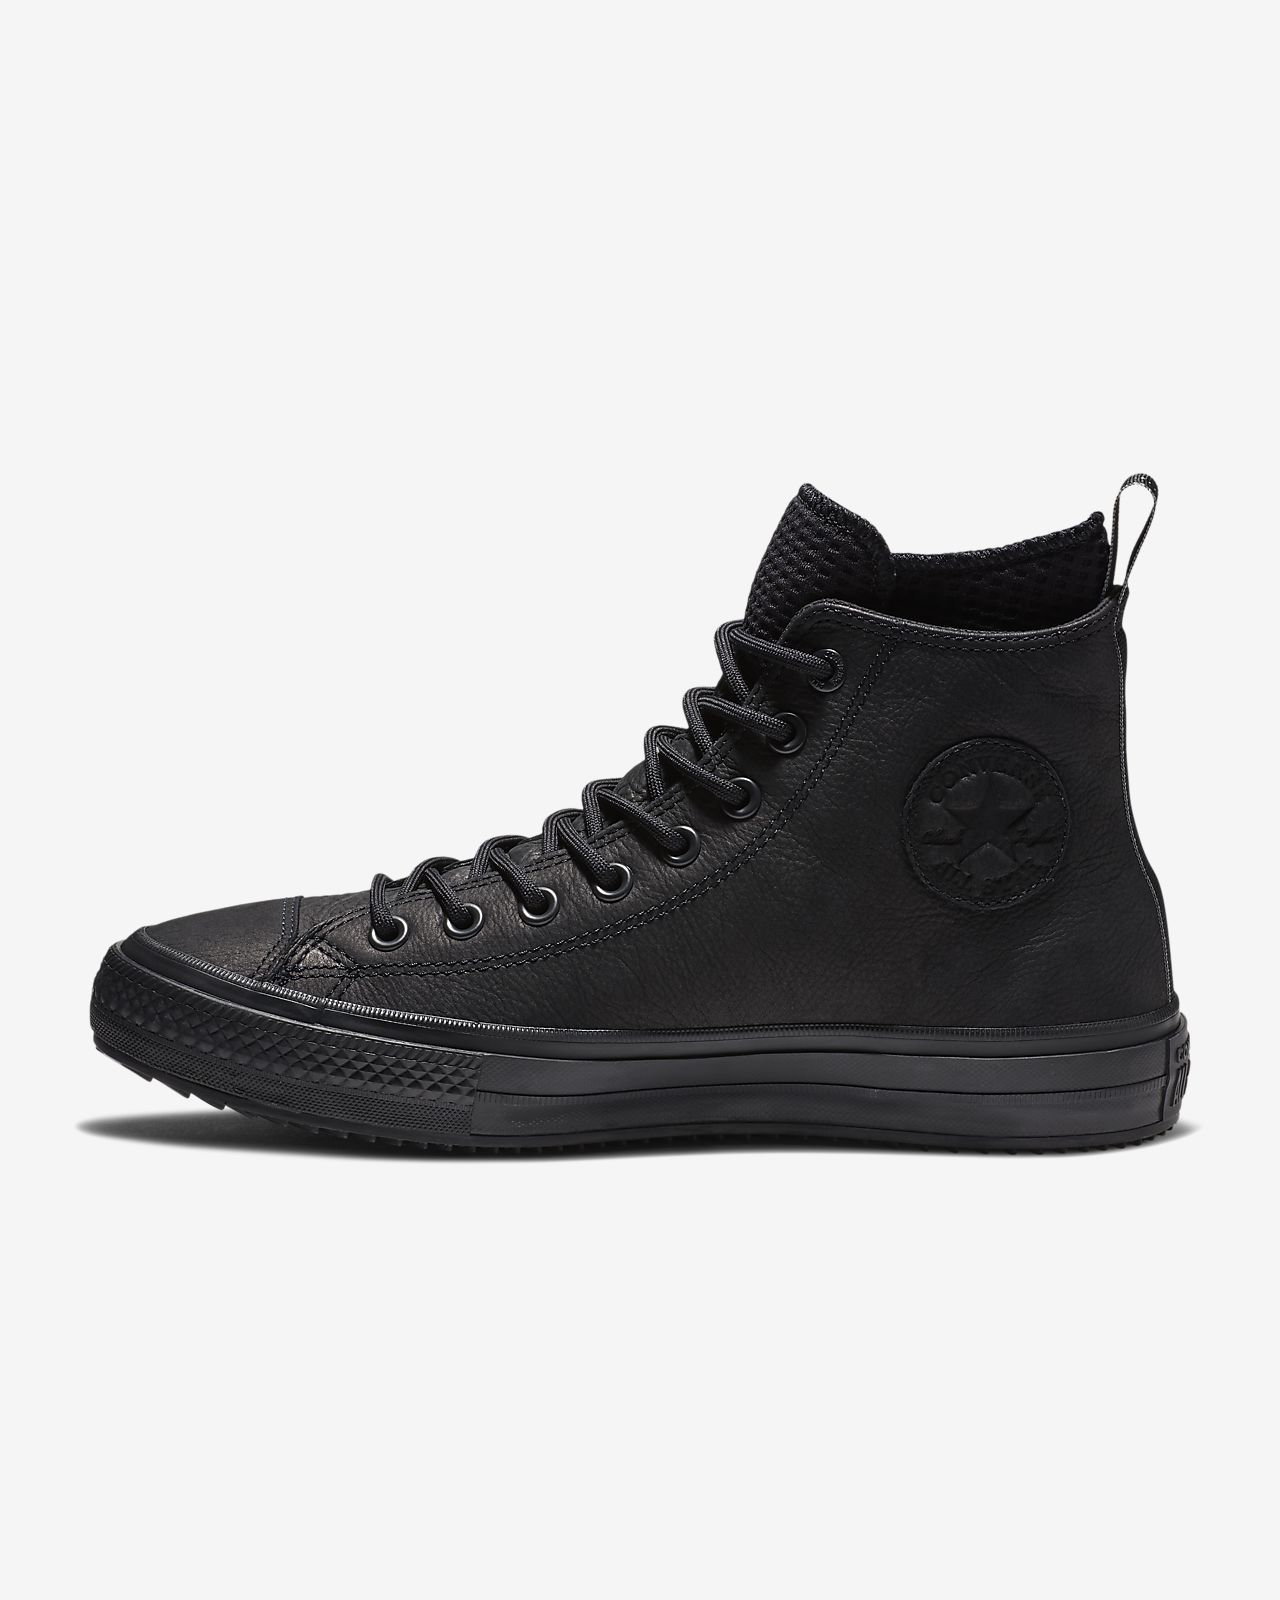 Unisex leather boots, Chuck taylors